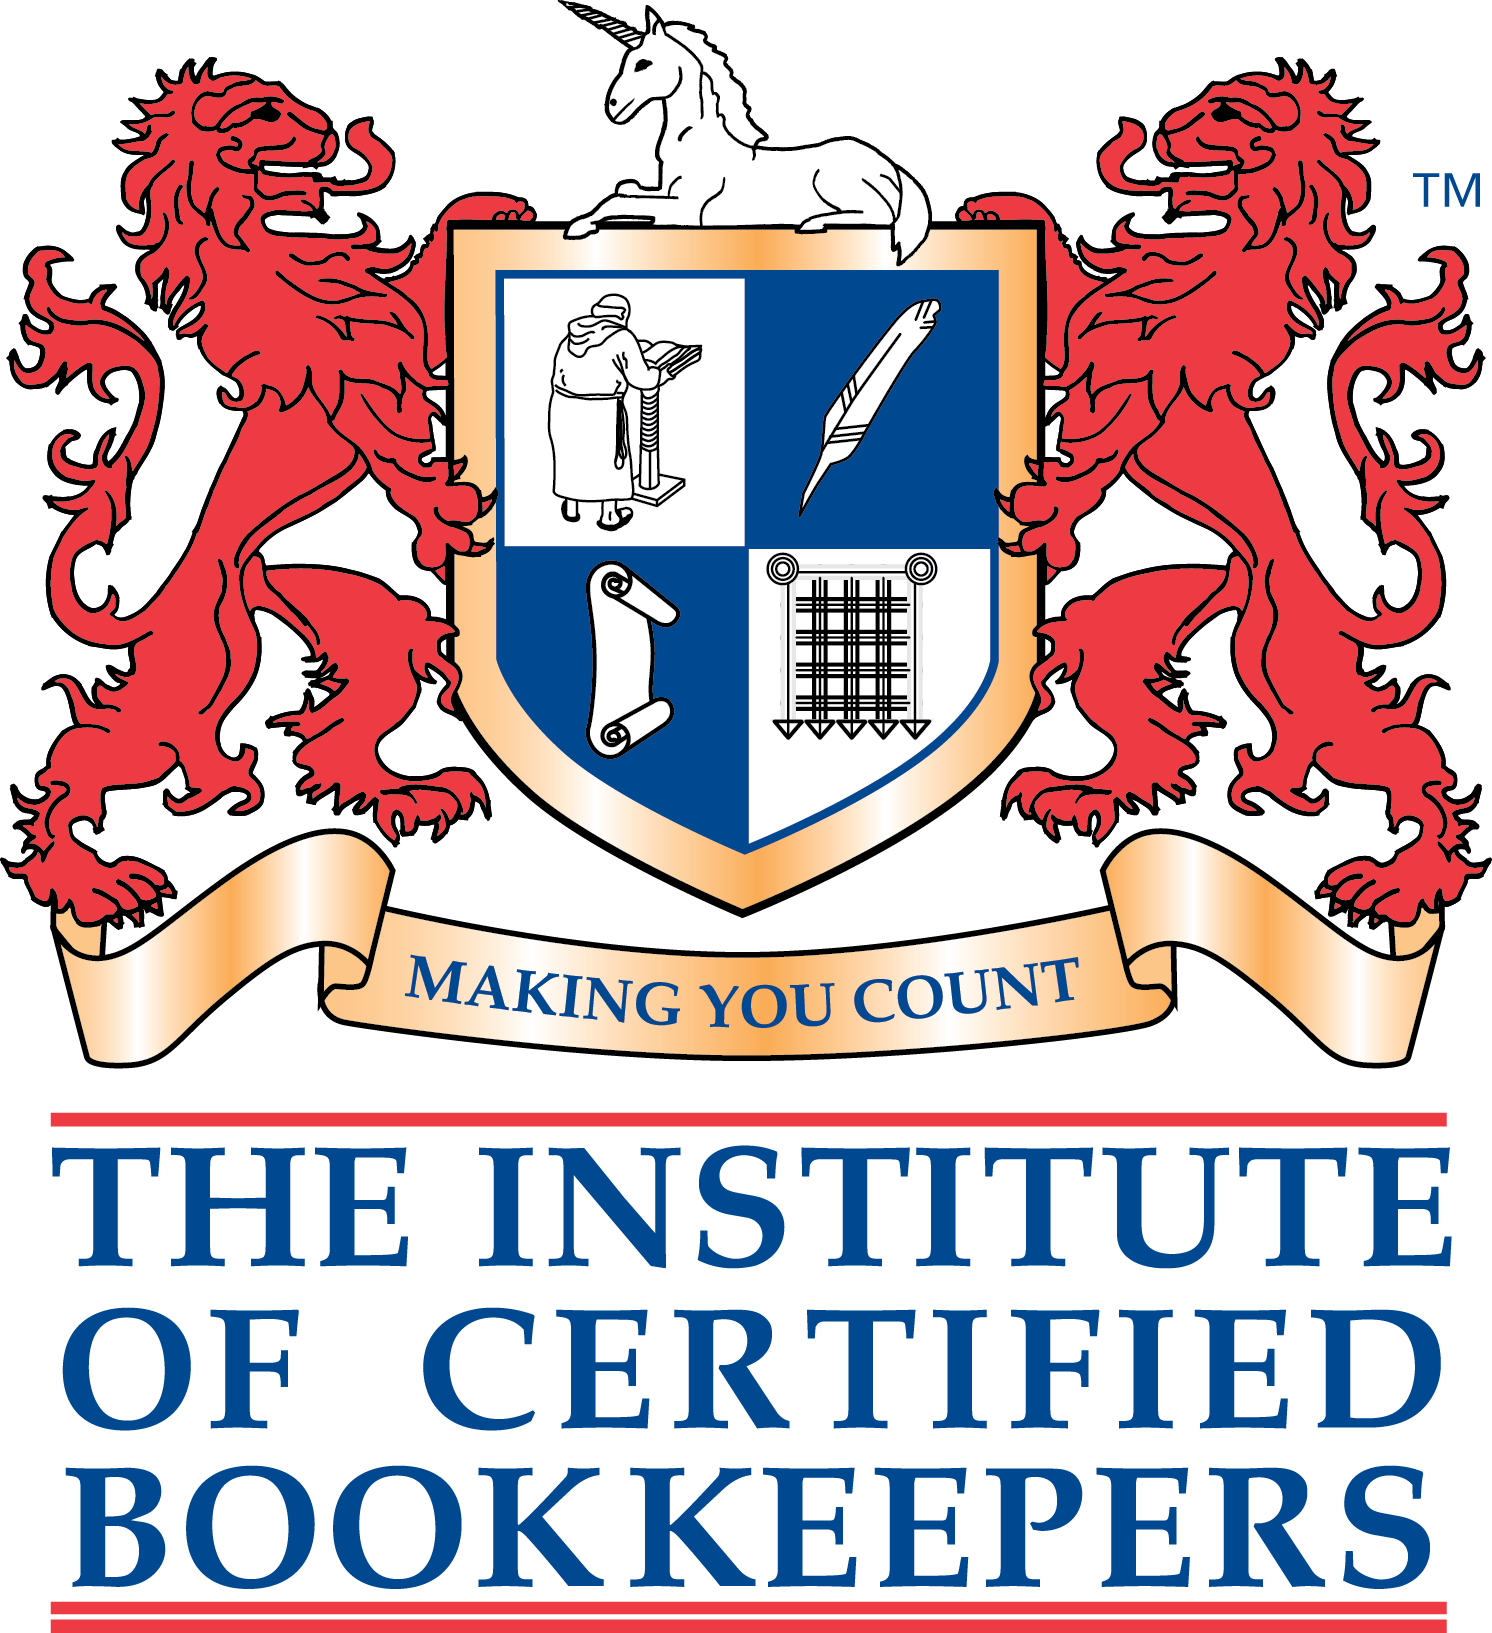 We are proud to practice under licence from the Institute of Certified Bookkeepers